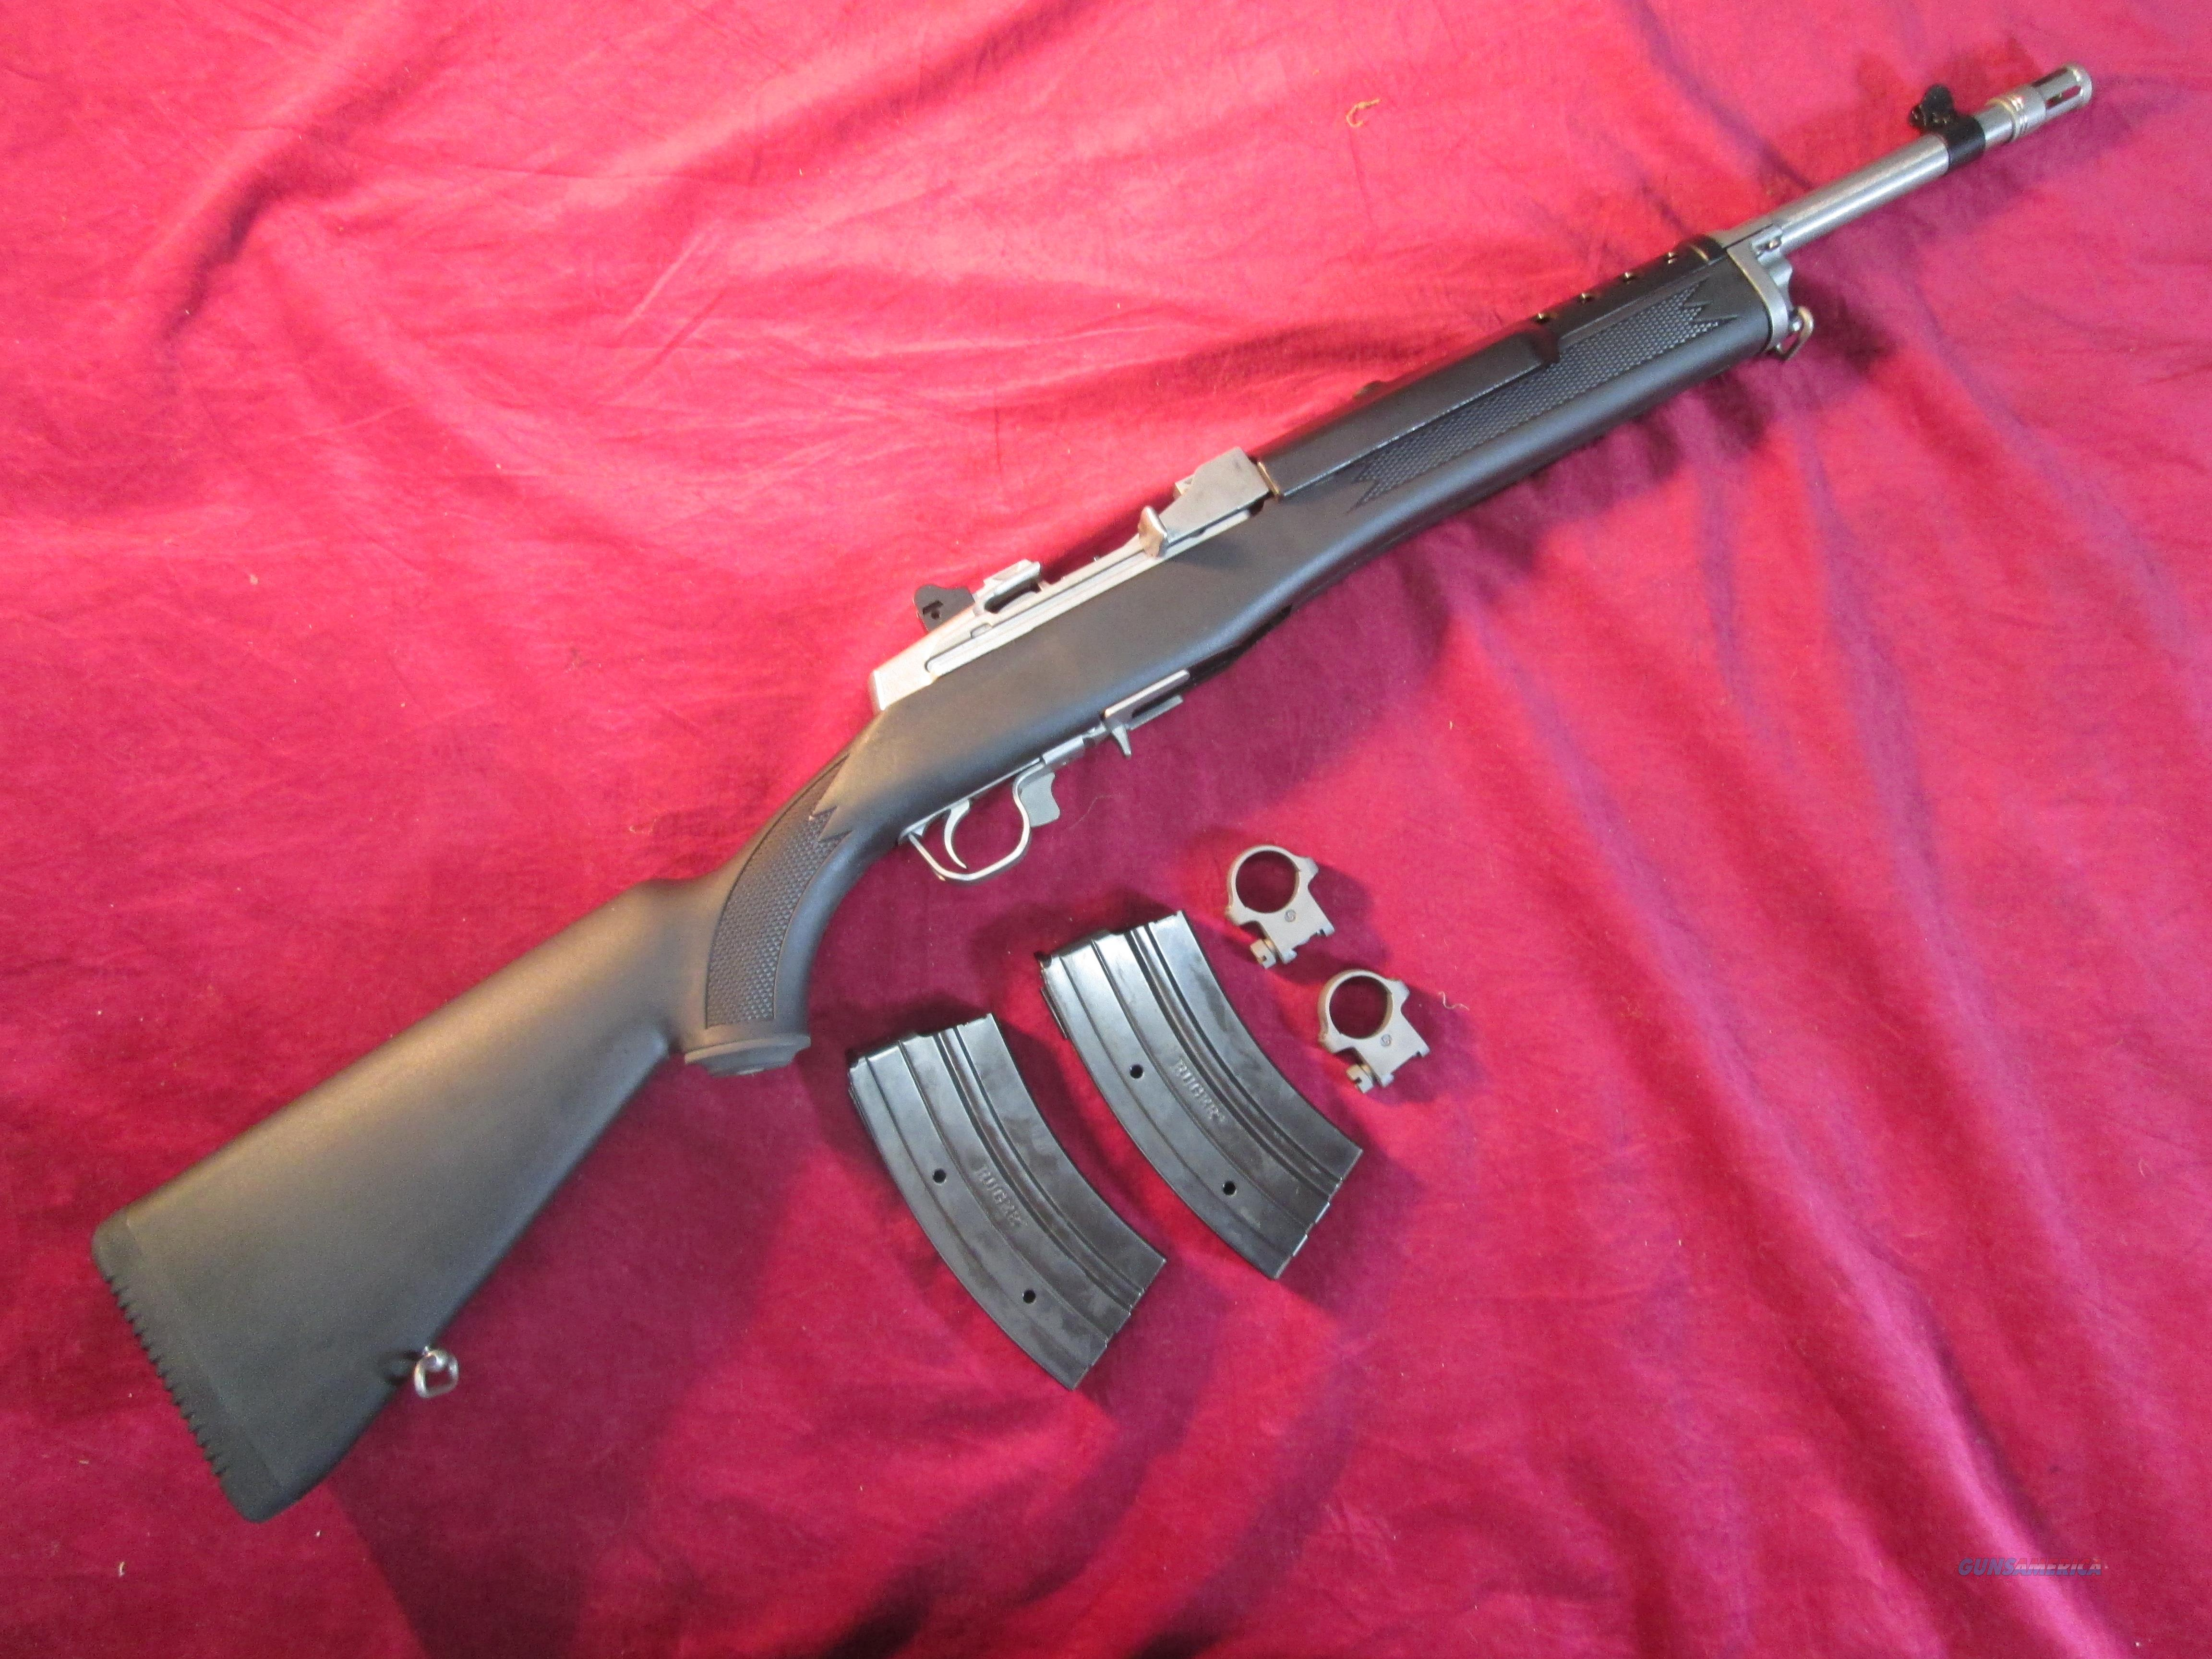 RUGER ALL WEATHER MINI 30 STAINLESS RANCH 7.62X39 CAL. W/ FLASH HIDER NEW   Guns > Rifles > Ruger Rifles > Mini-14 Type